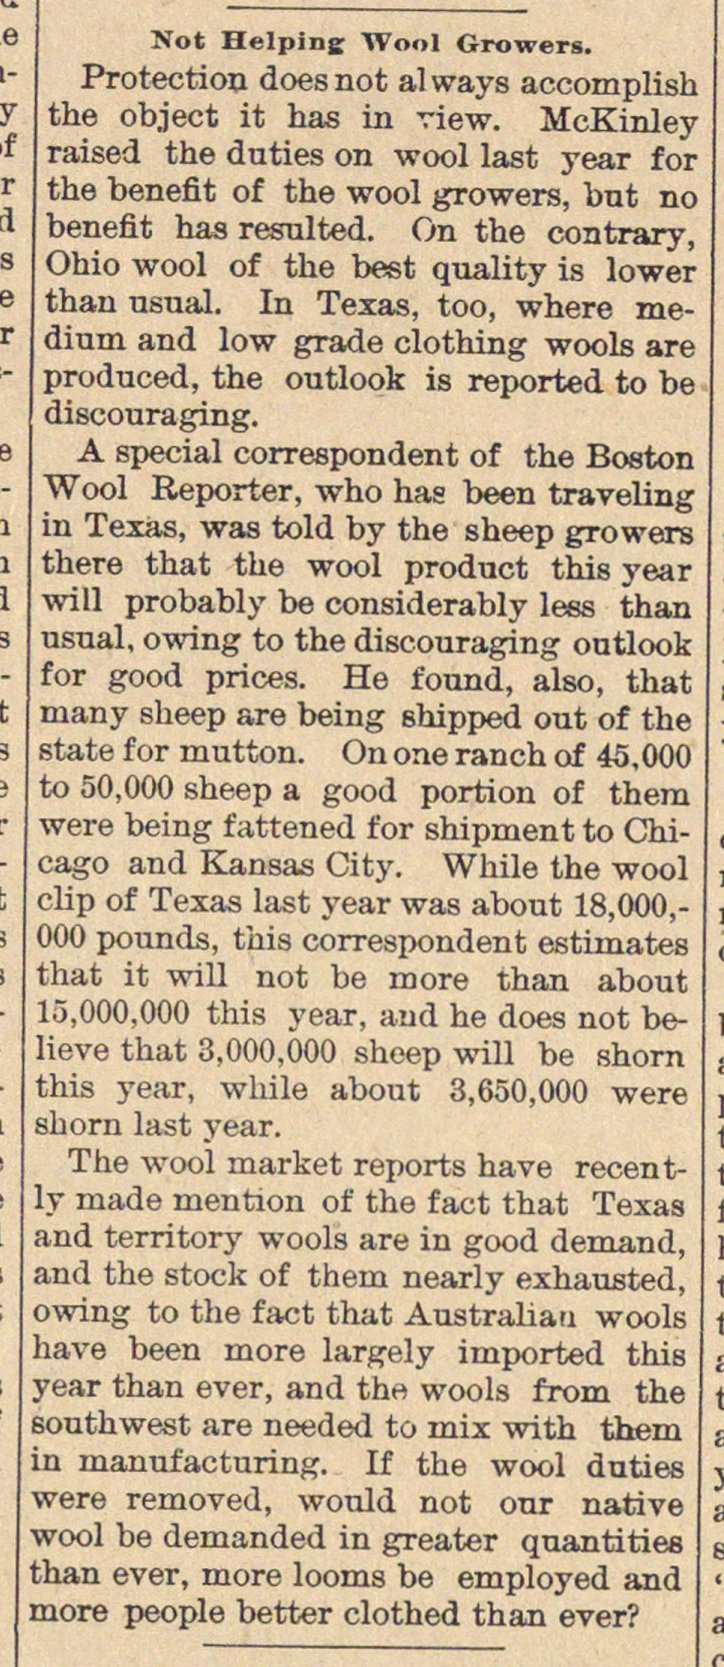 Not Helping Wool Growers image